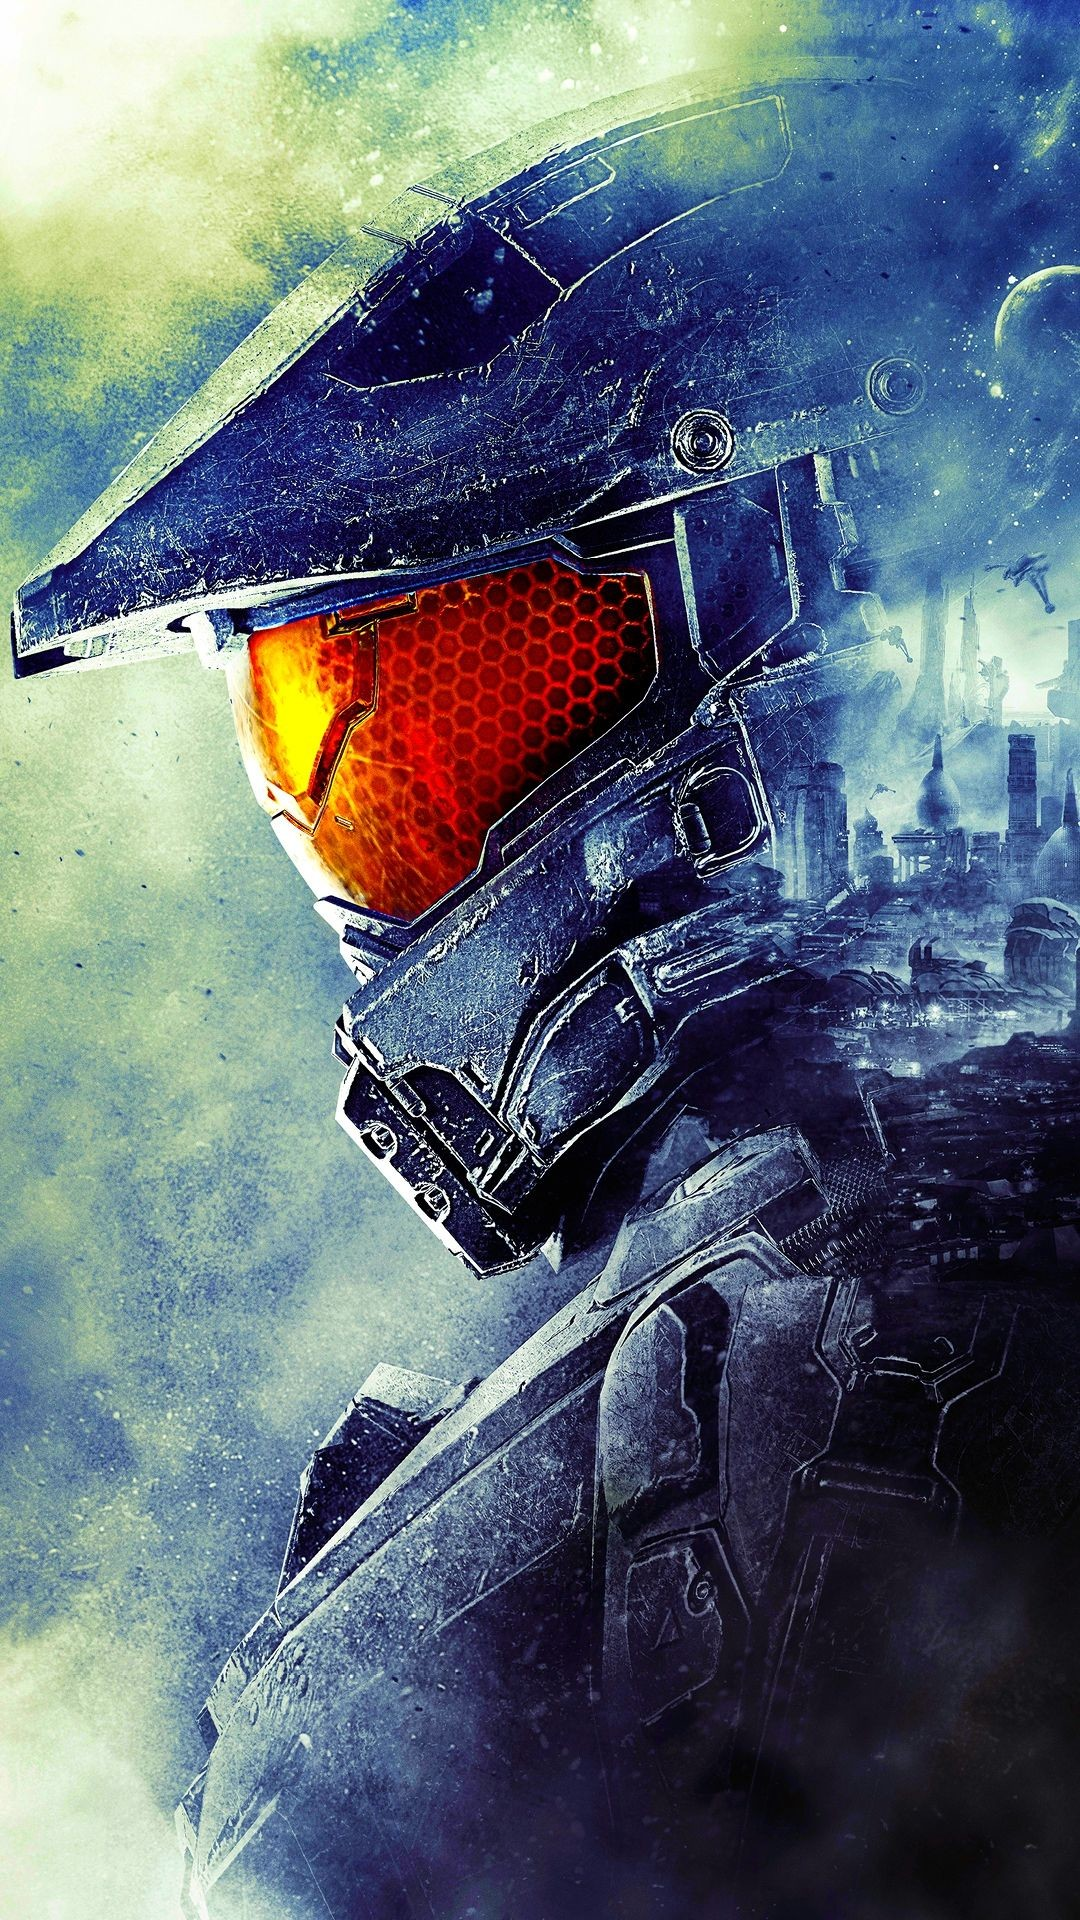 Lion Live Wallpaper Iphone X Halo 3 Master Chief Wallpaper 68 Images